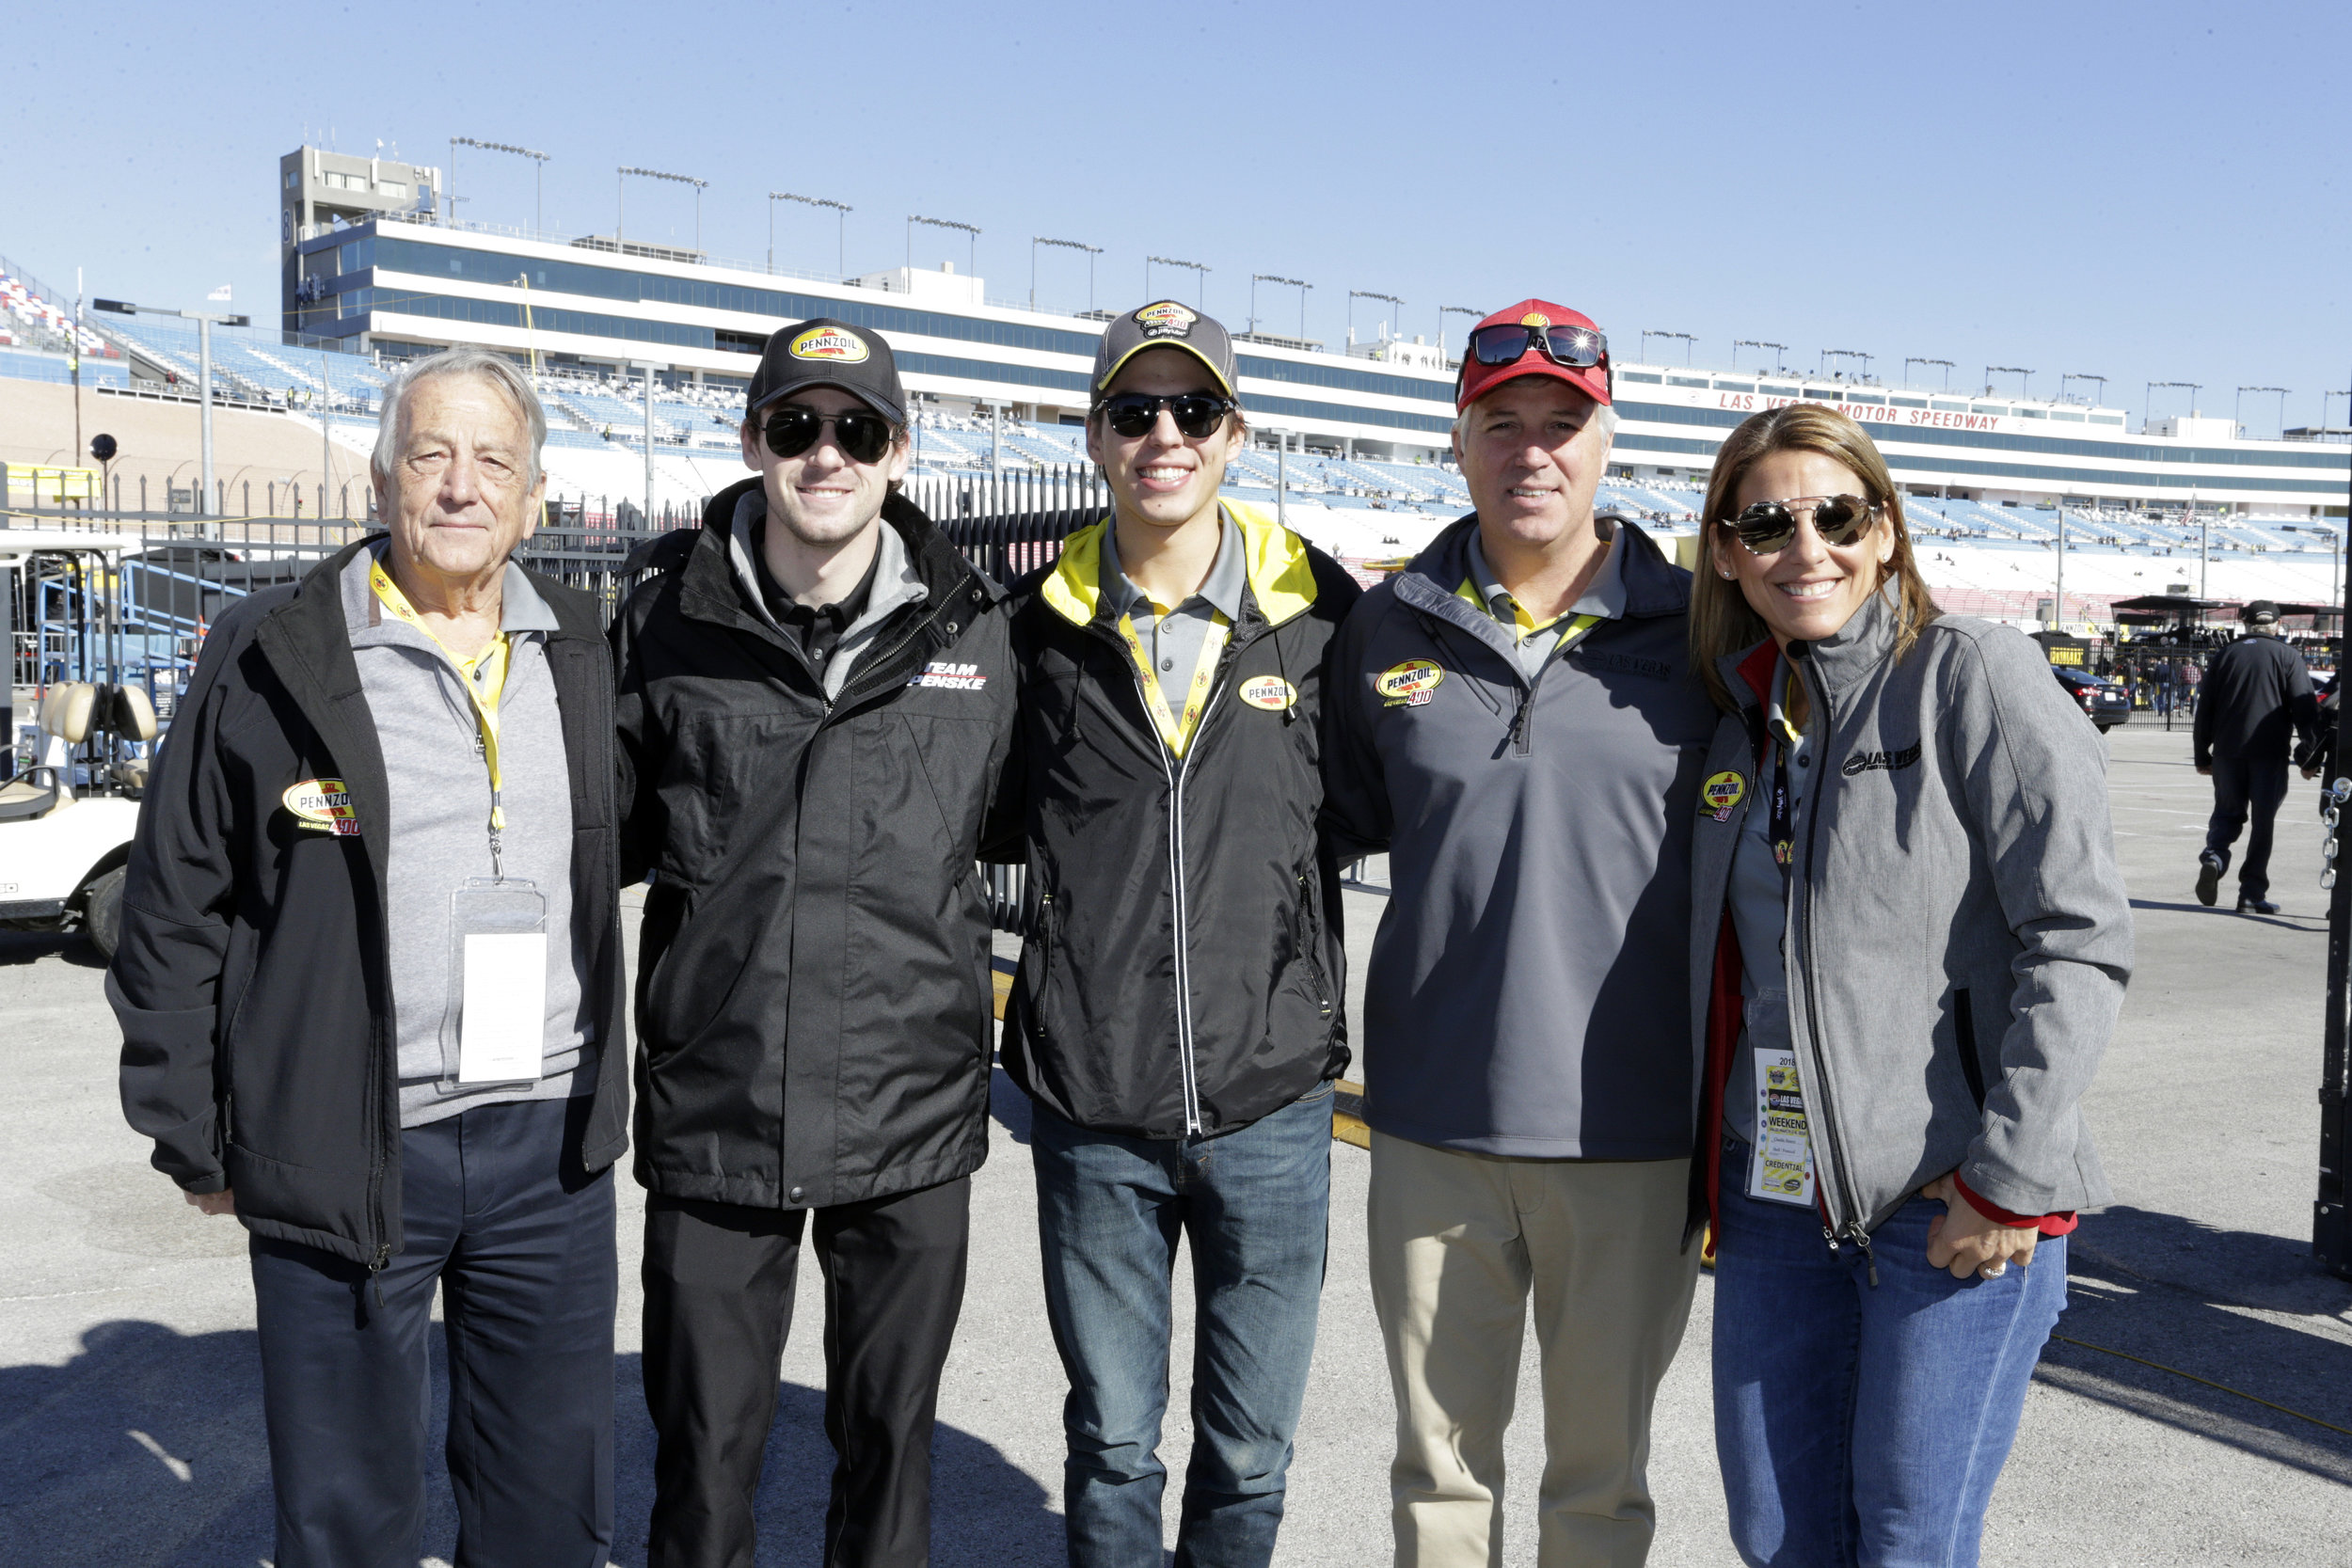 The Maurer family meets with Ryan Blaney ahead of the Pennzoil 400